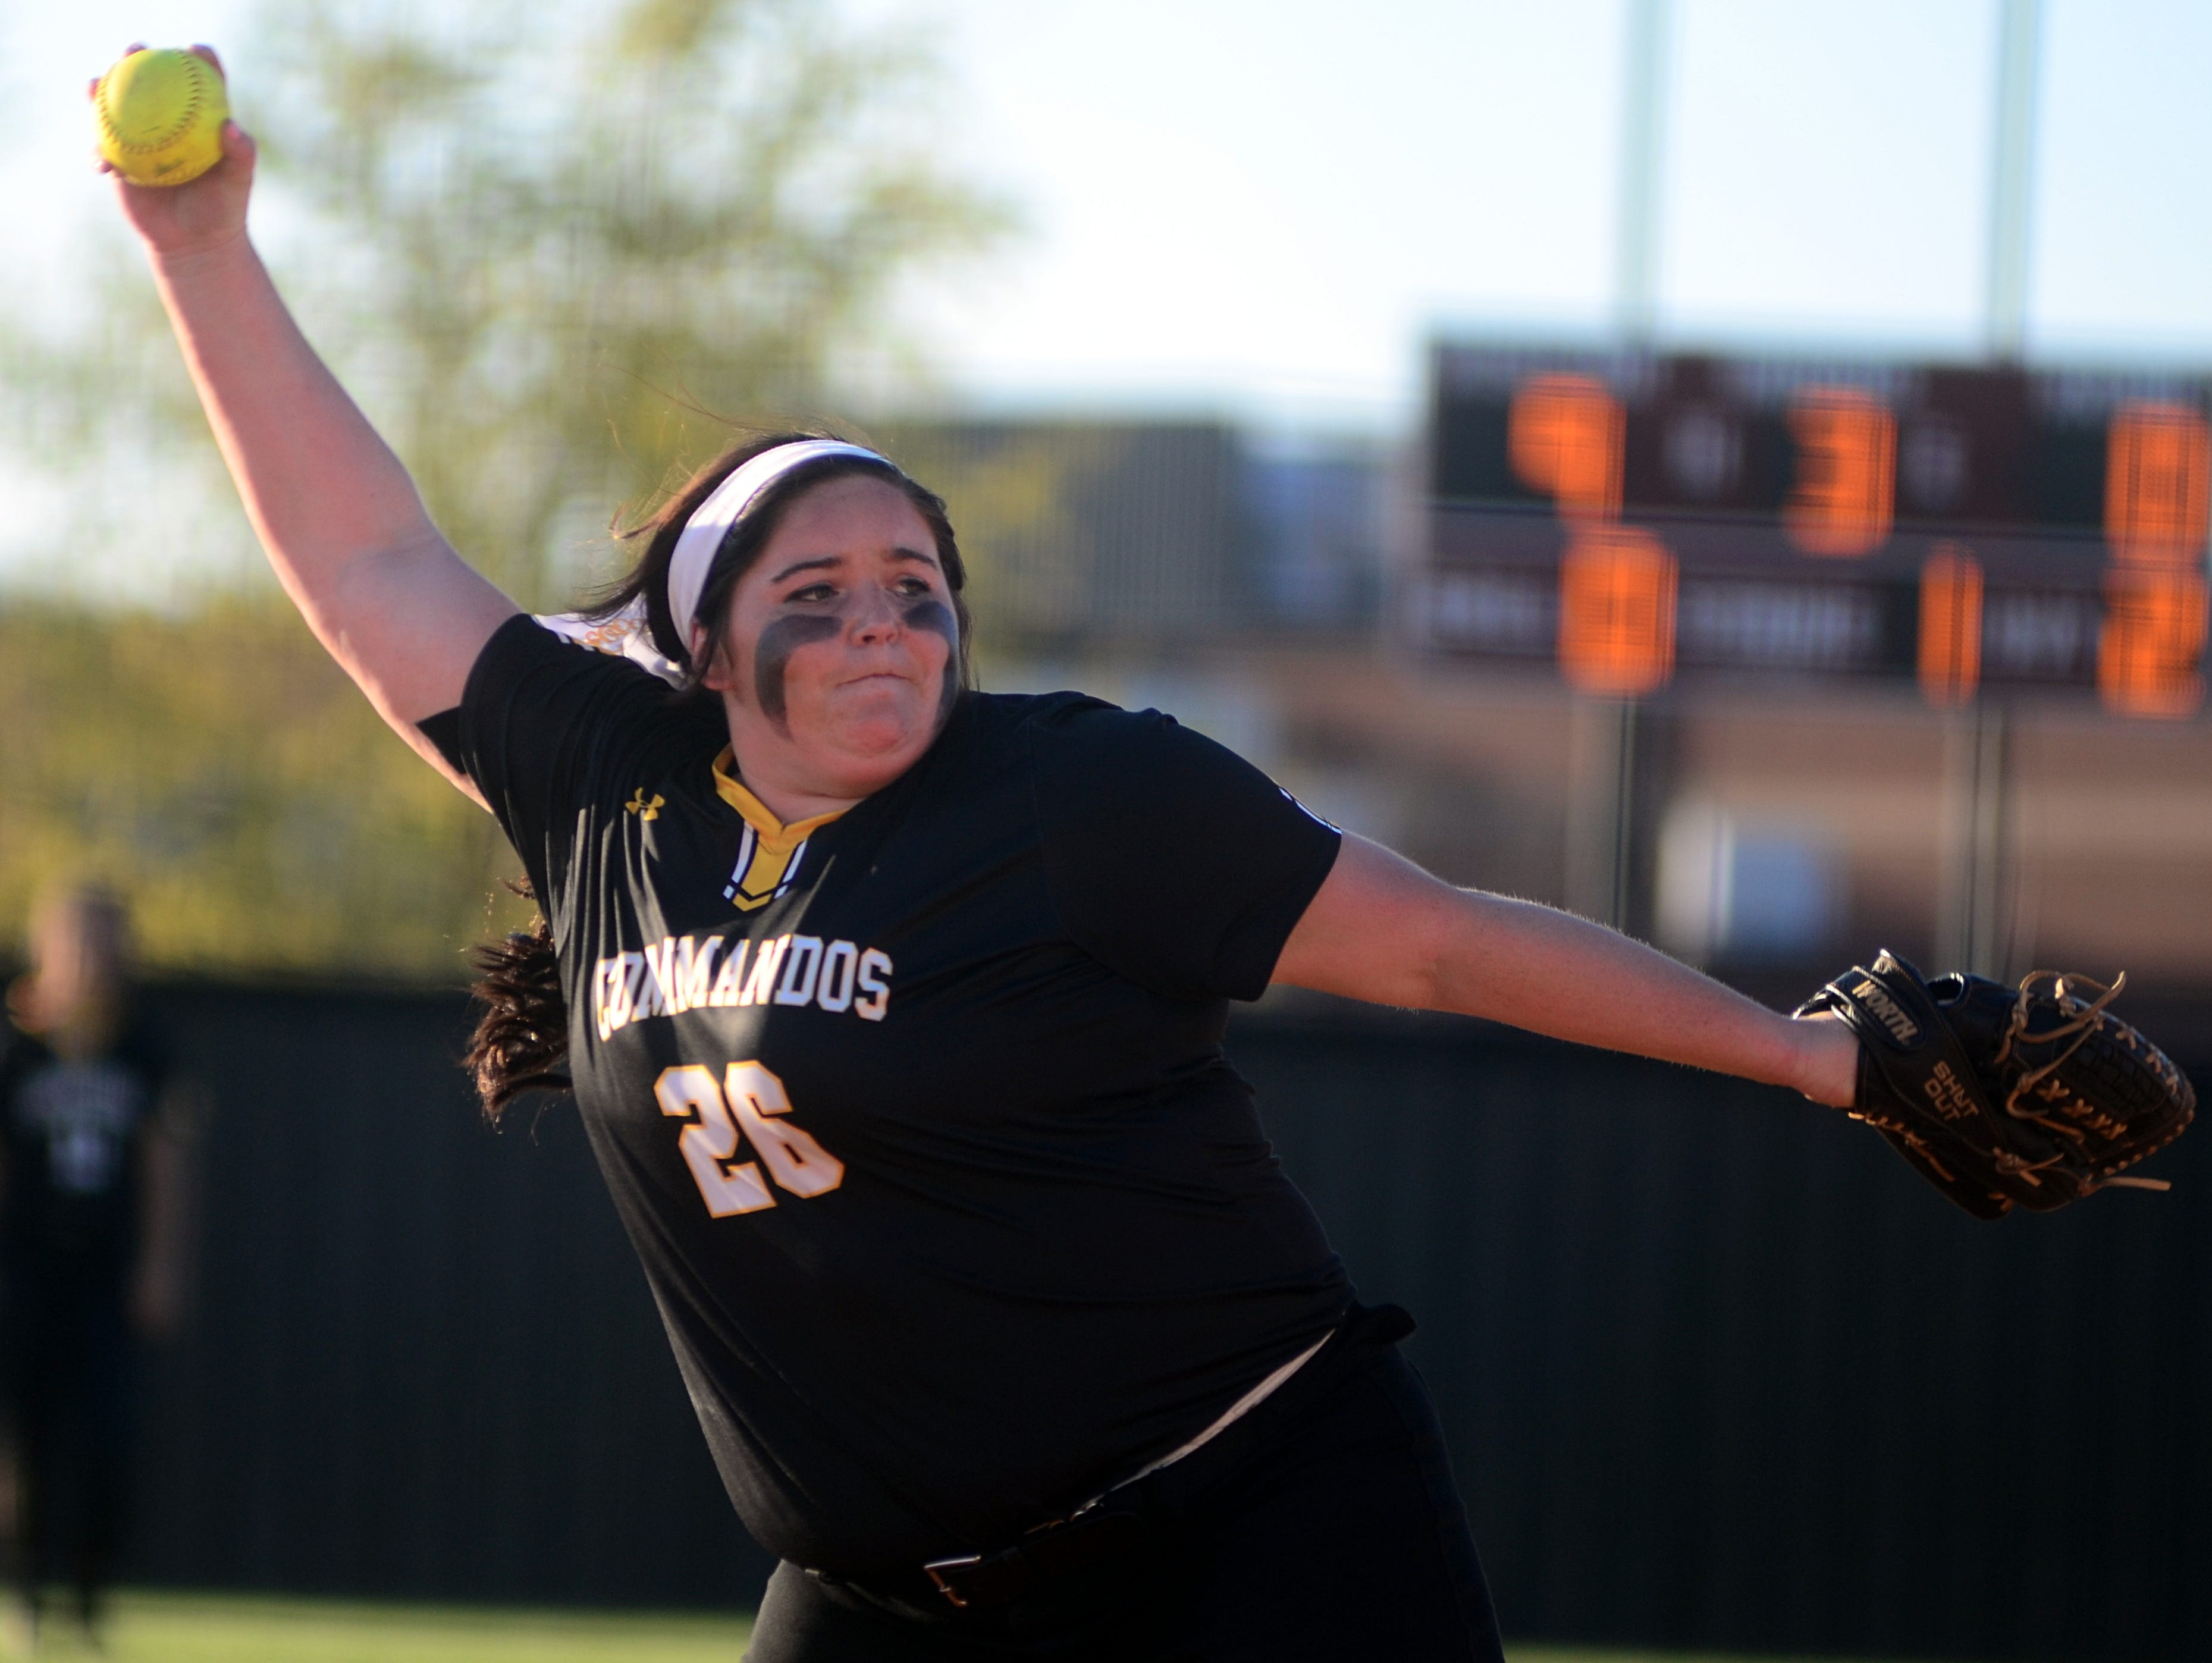 Hendersonville High senior pitcher Carley Carlisle struck out 13 hitters in the Lady Commandos' 14-2 victory at Station Camp on Monday evening. Carlisle allowed just one hit and also drove in two runs.